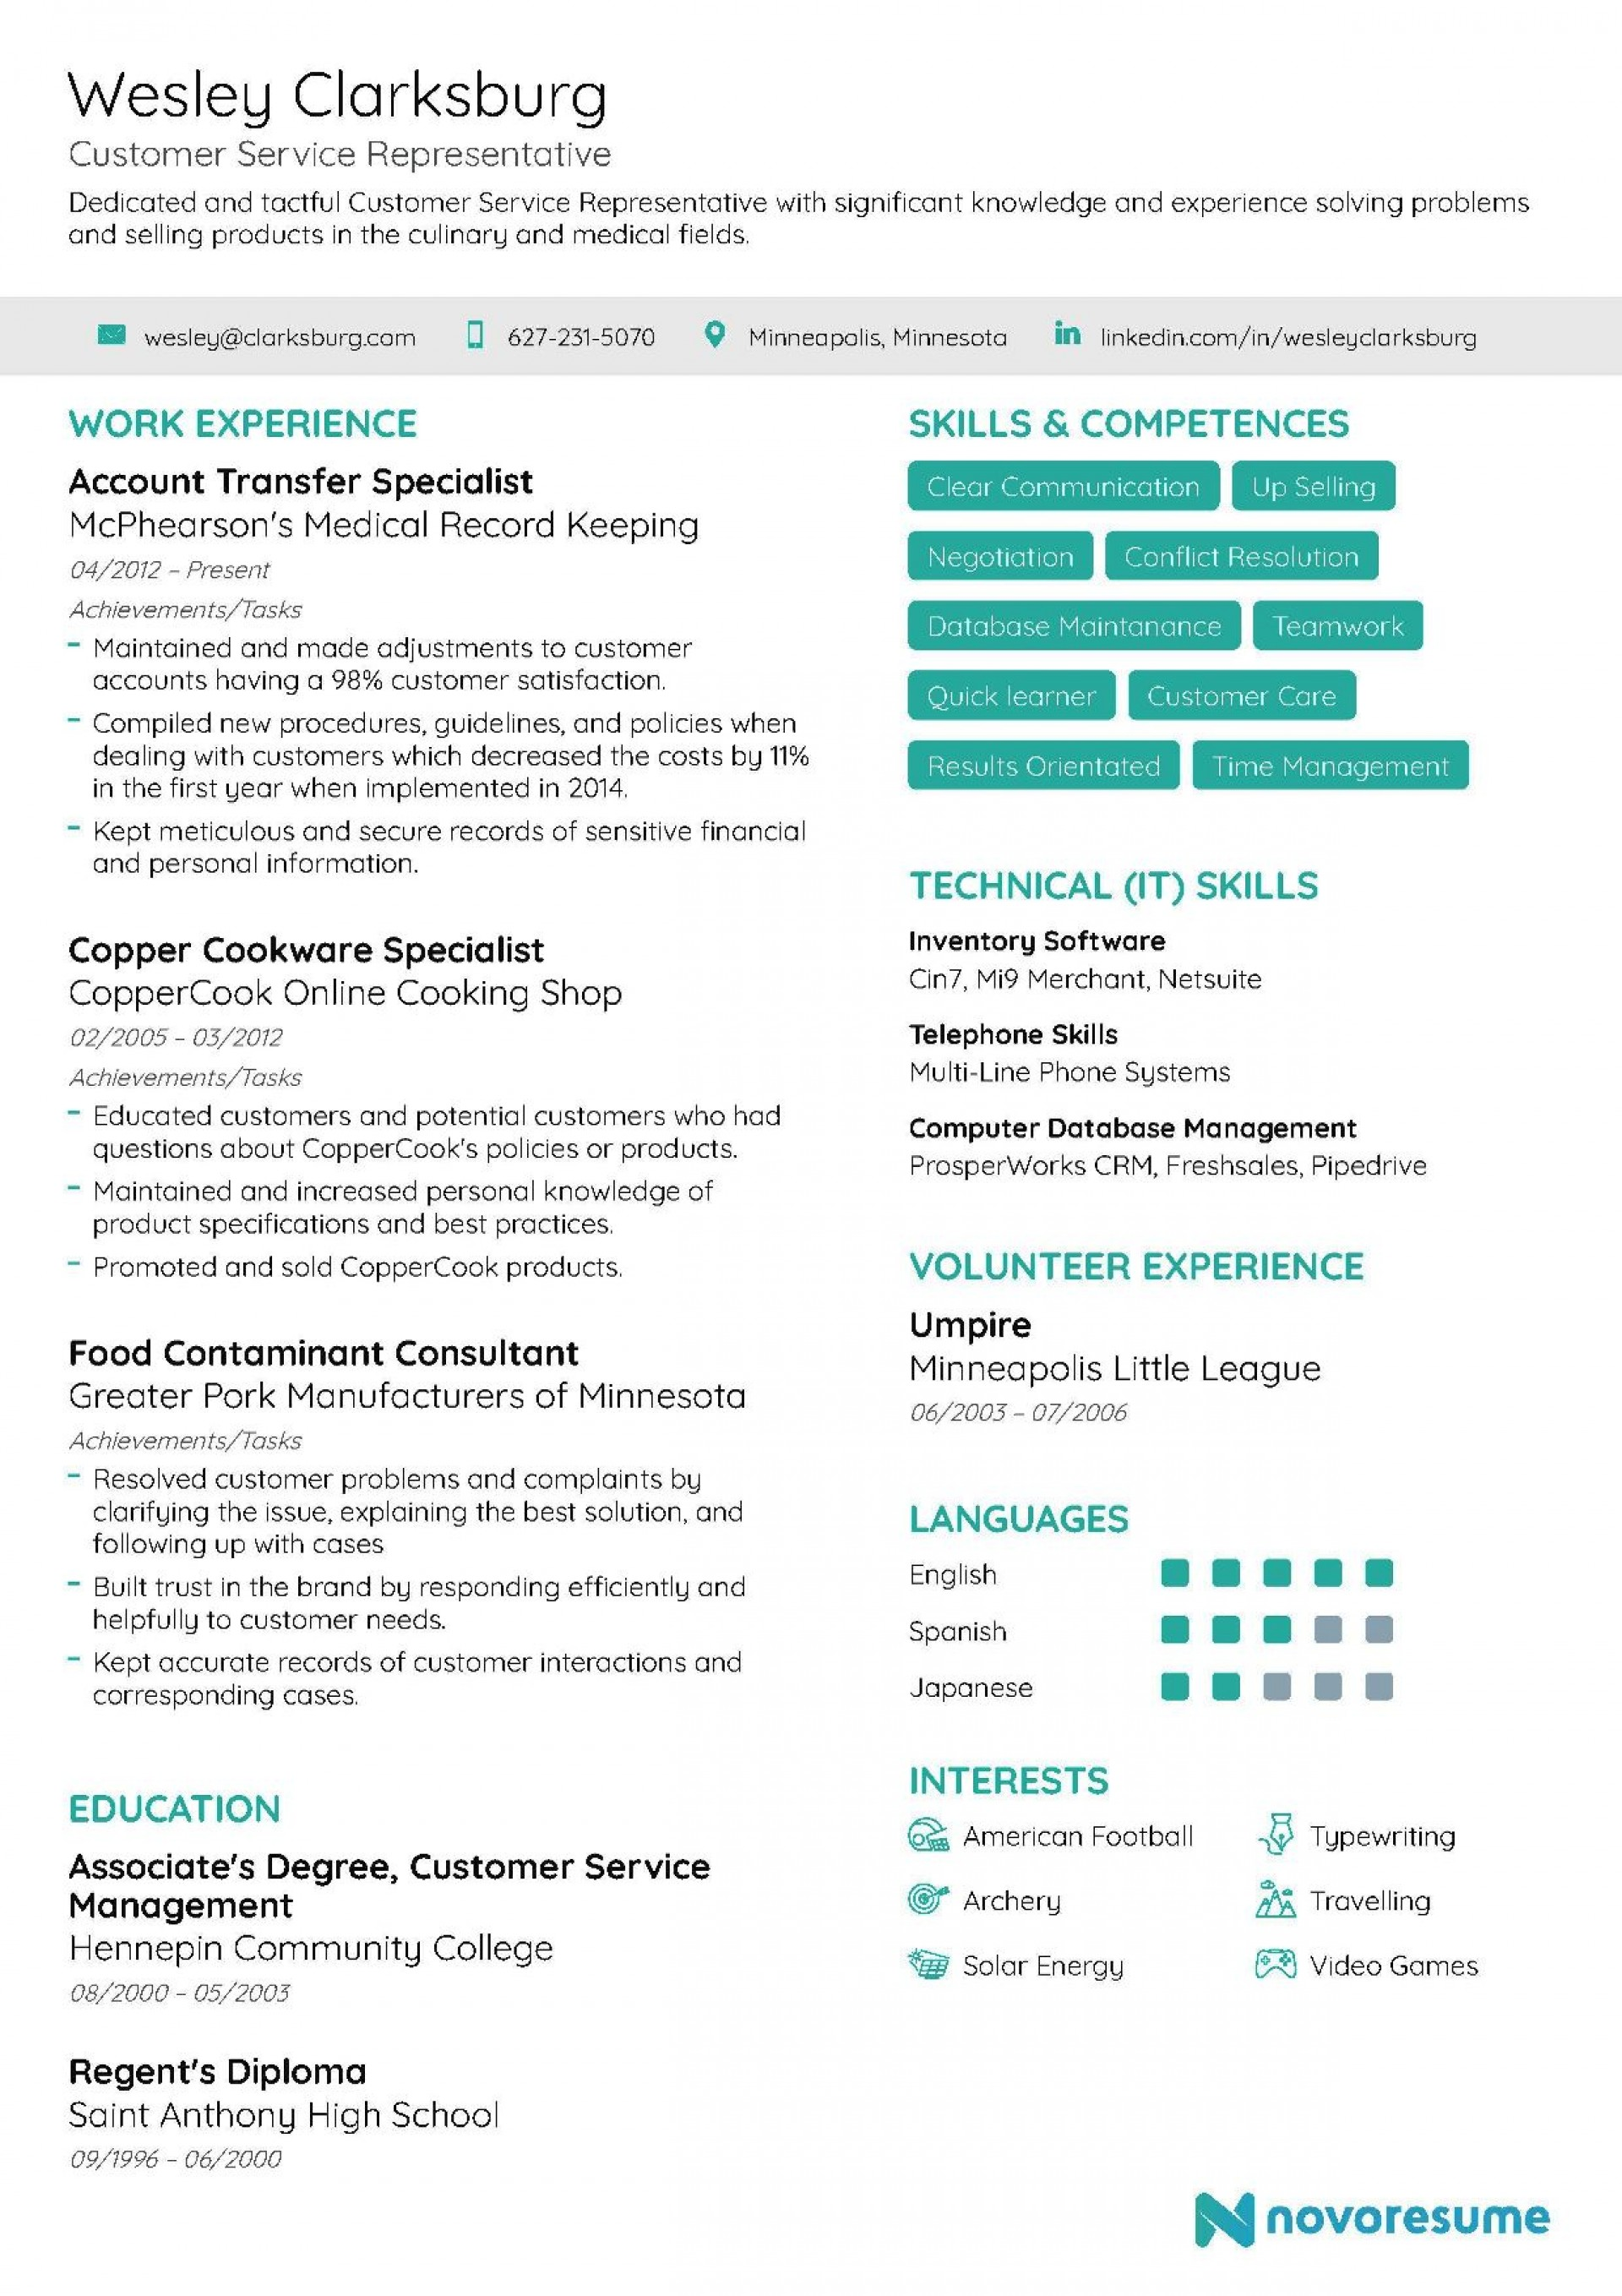 006 Imposing Customer Service Resume Template Image  Templates 2018 Word Cv1920